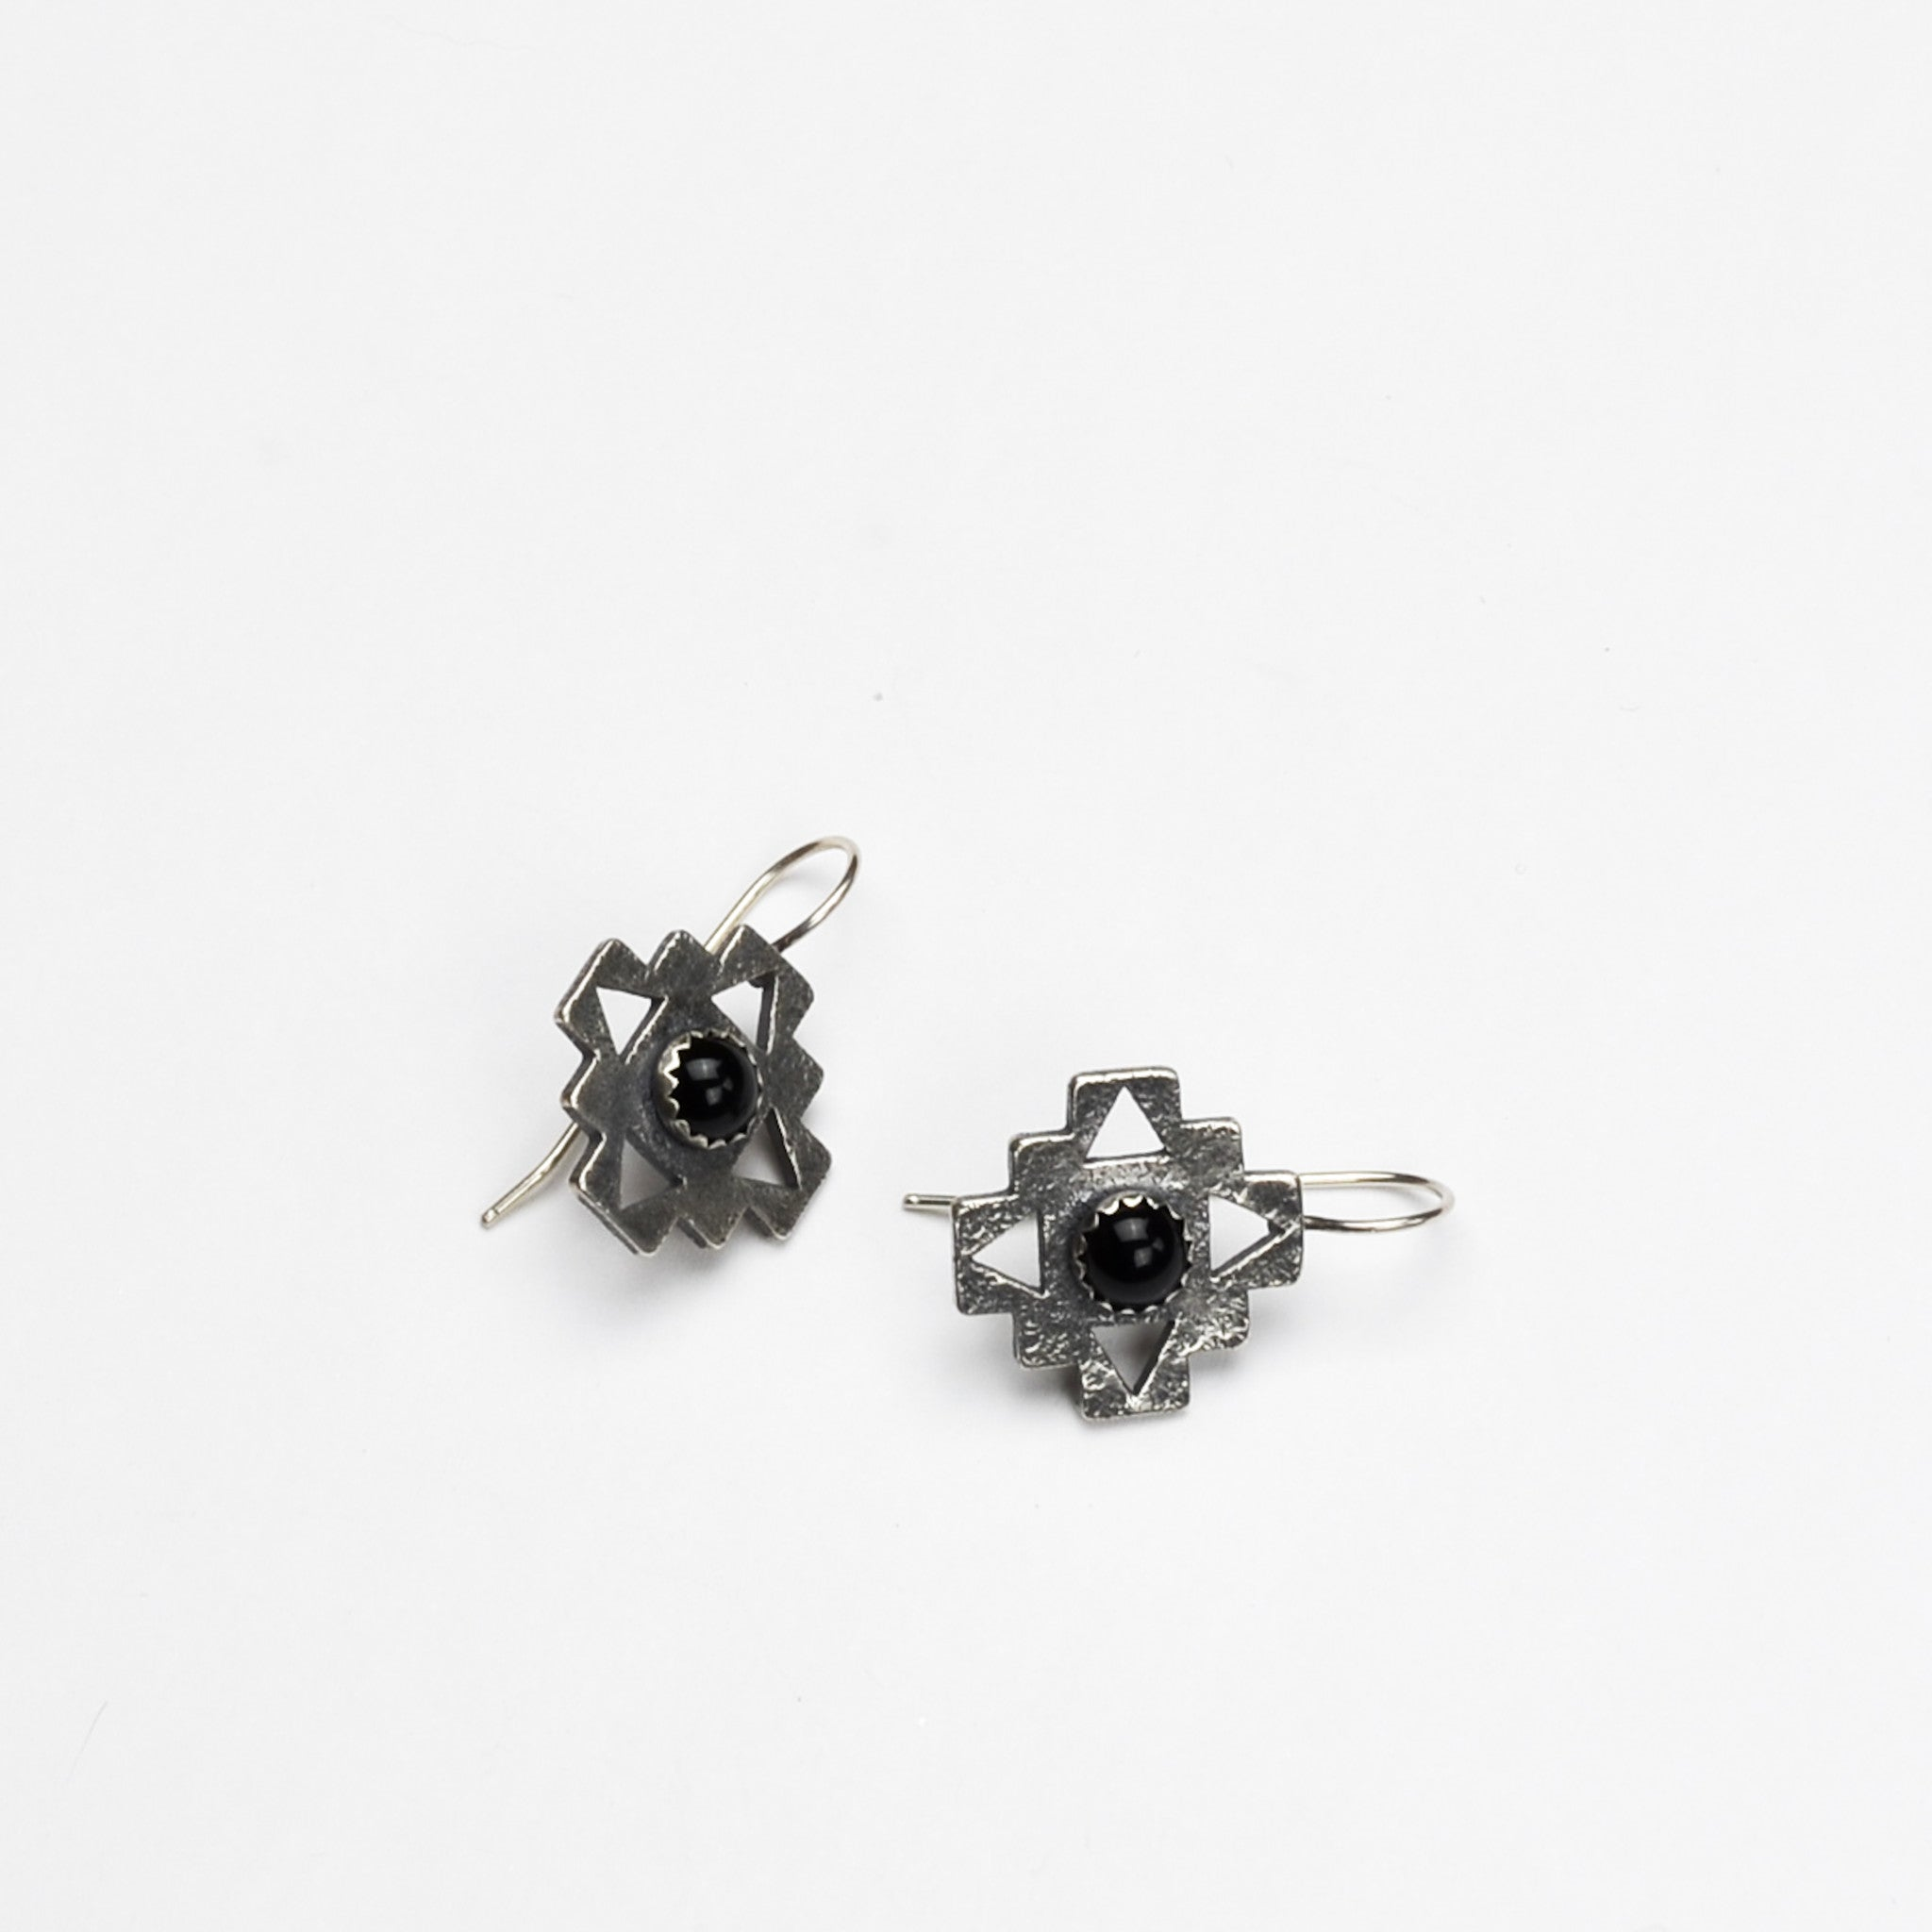 Cruz Sterling Silver Earrings